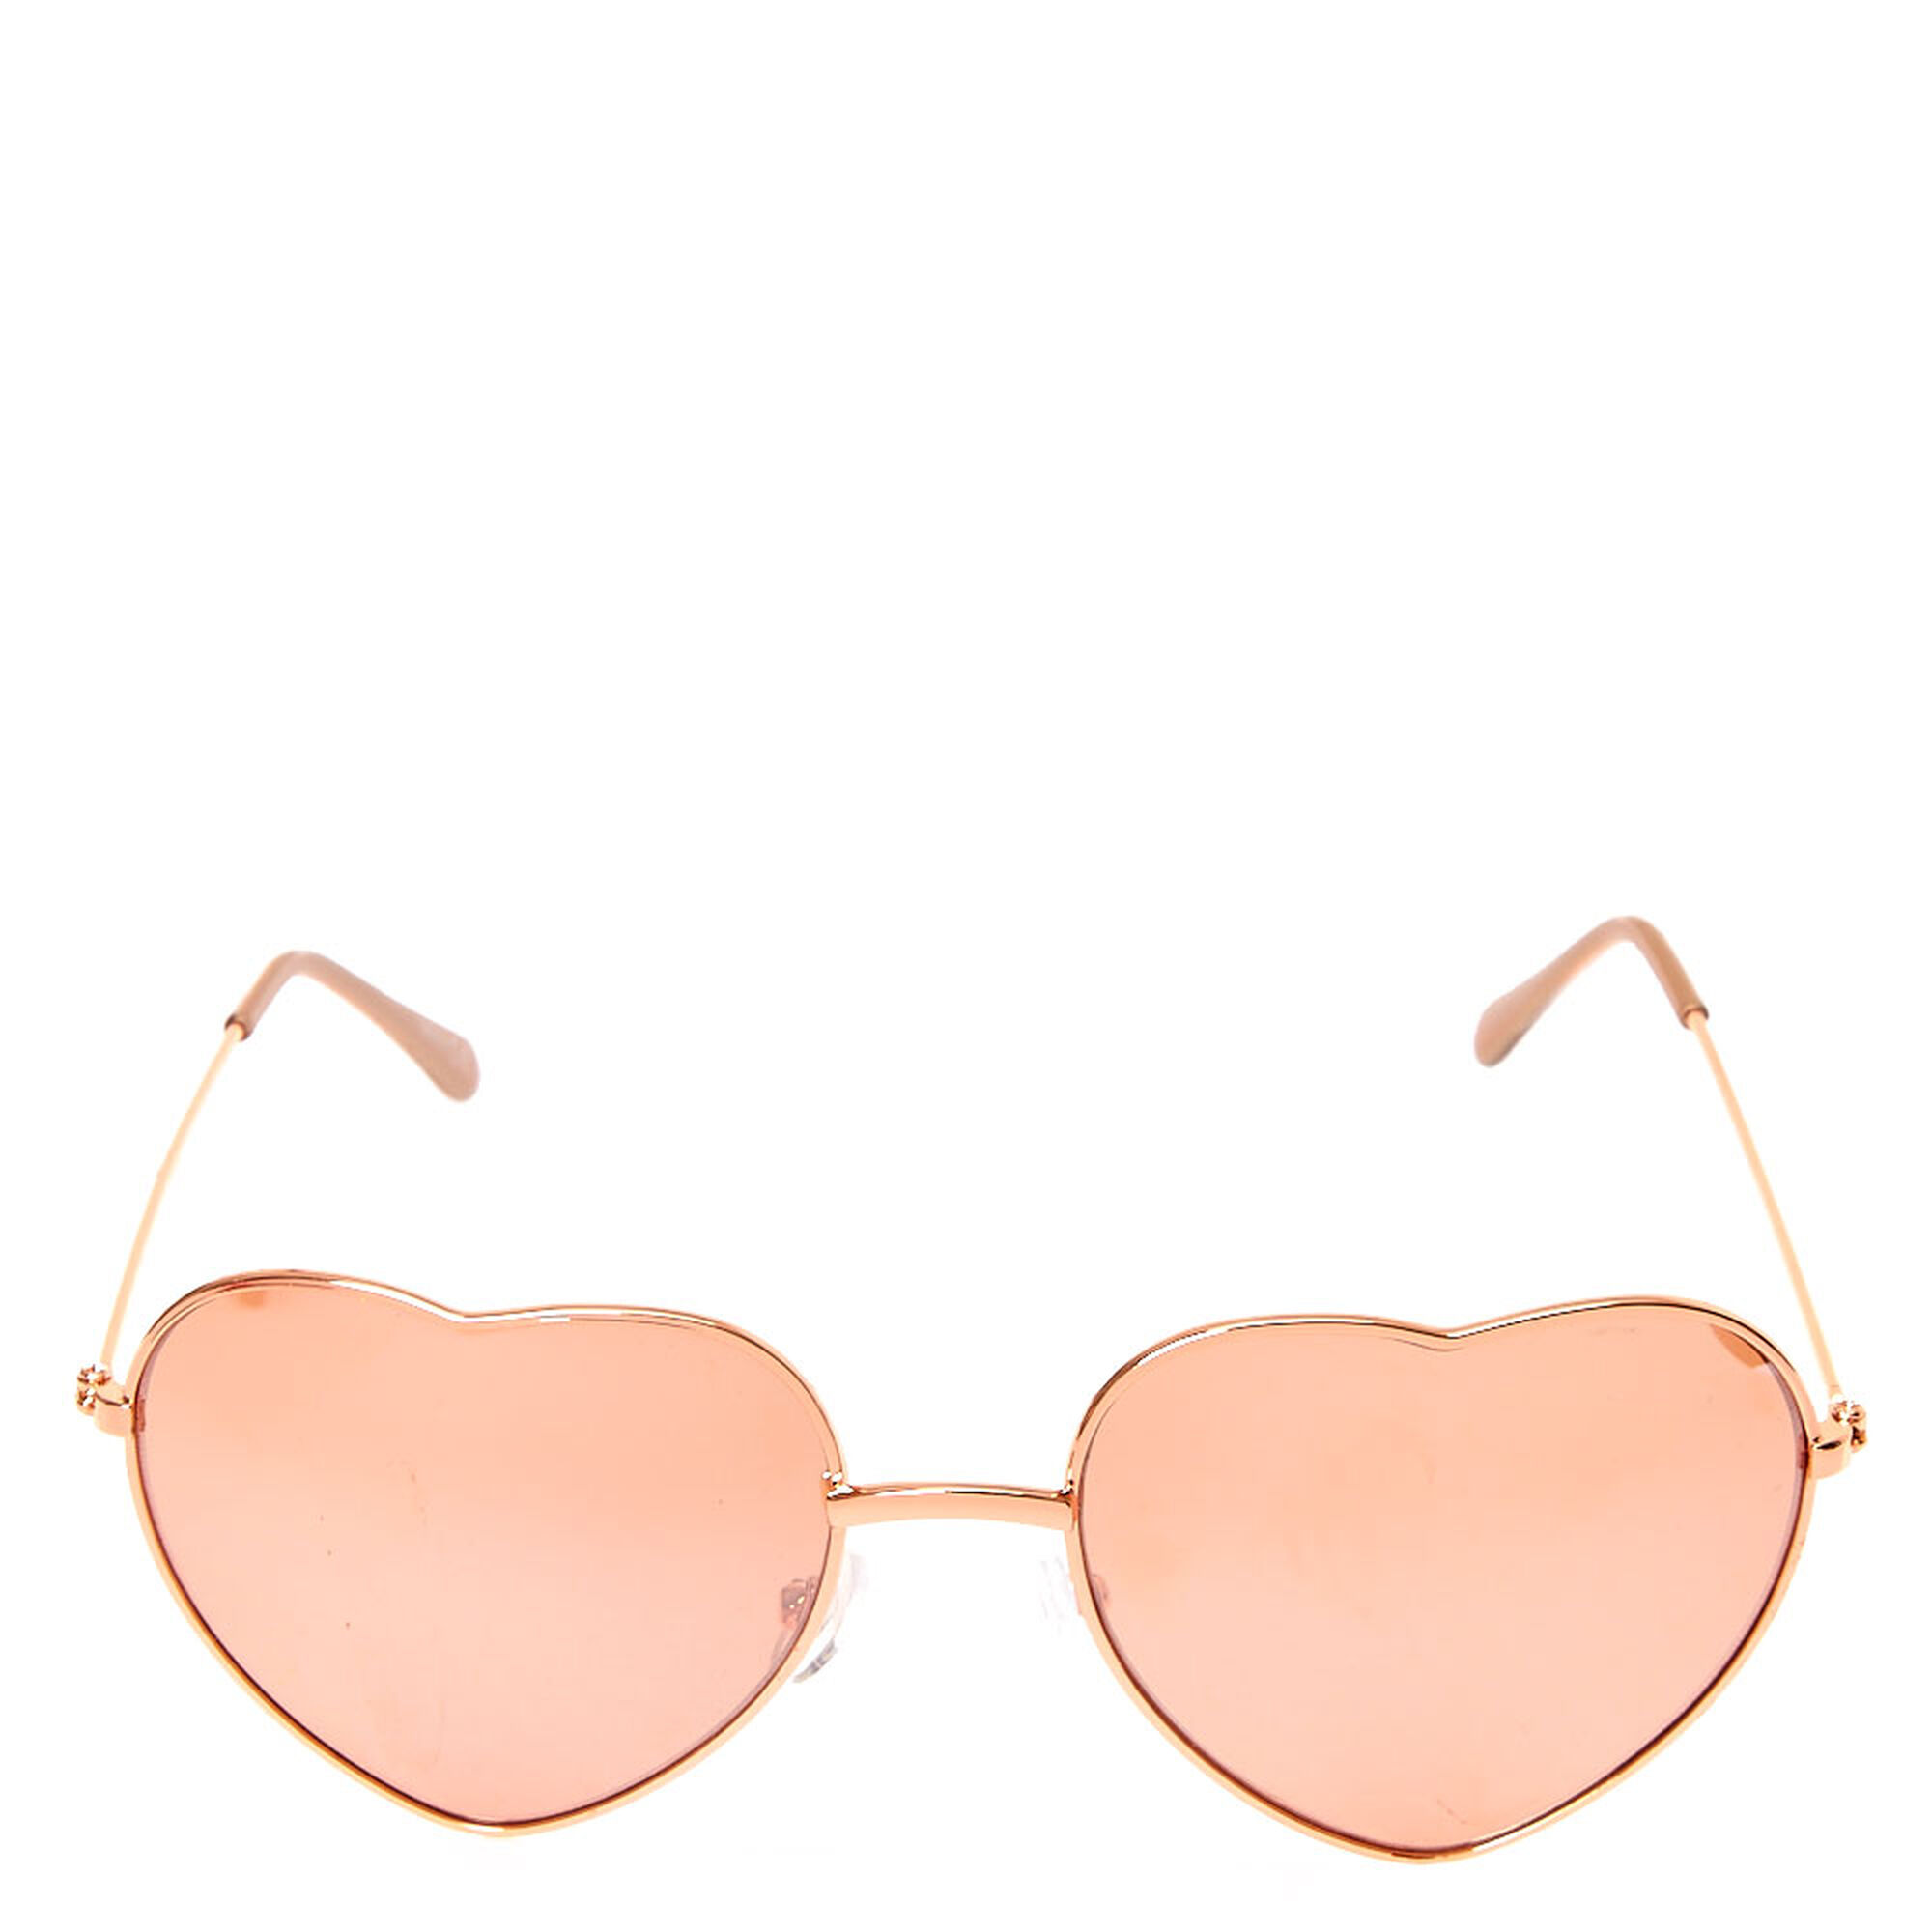 0ad446dc3 Claire's Claire's Heart Sunglasses - Rose Gold at £10 | love the brands